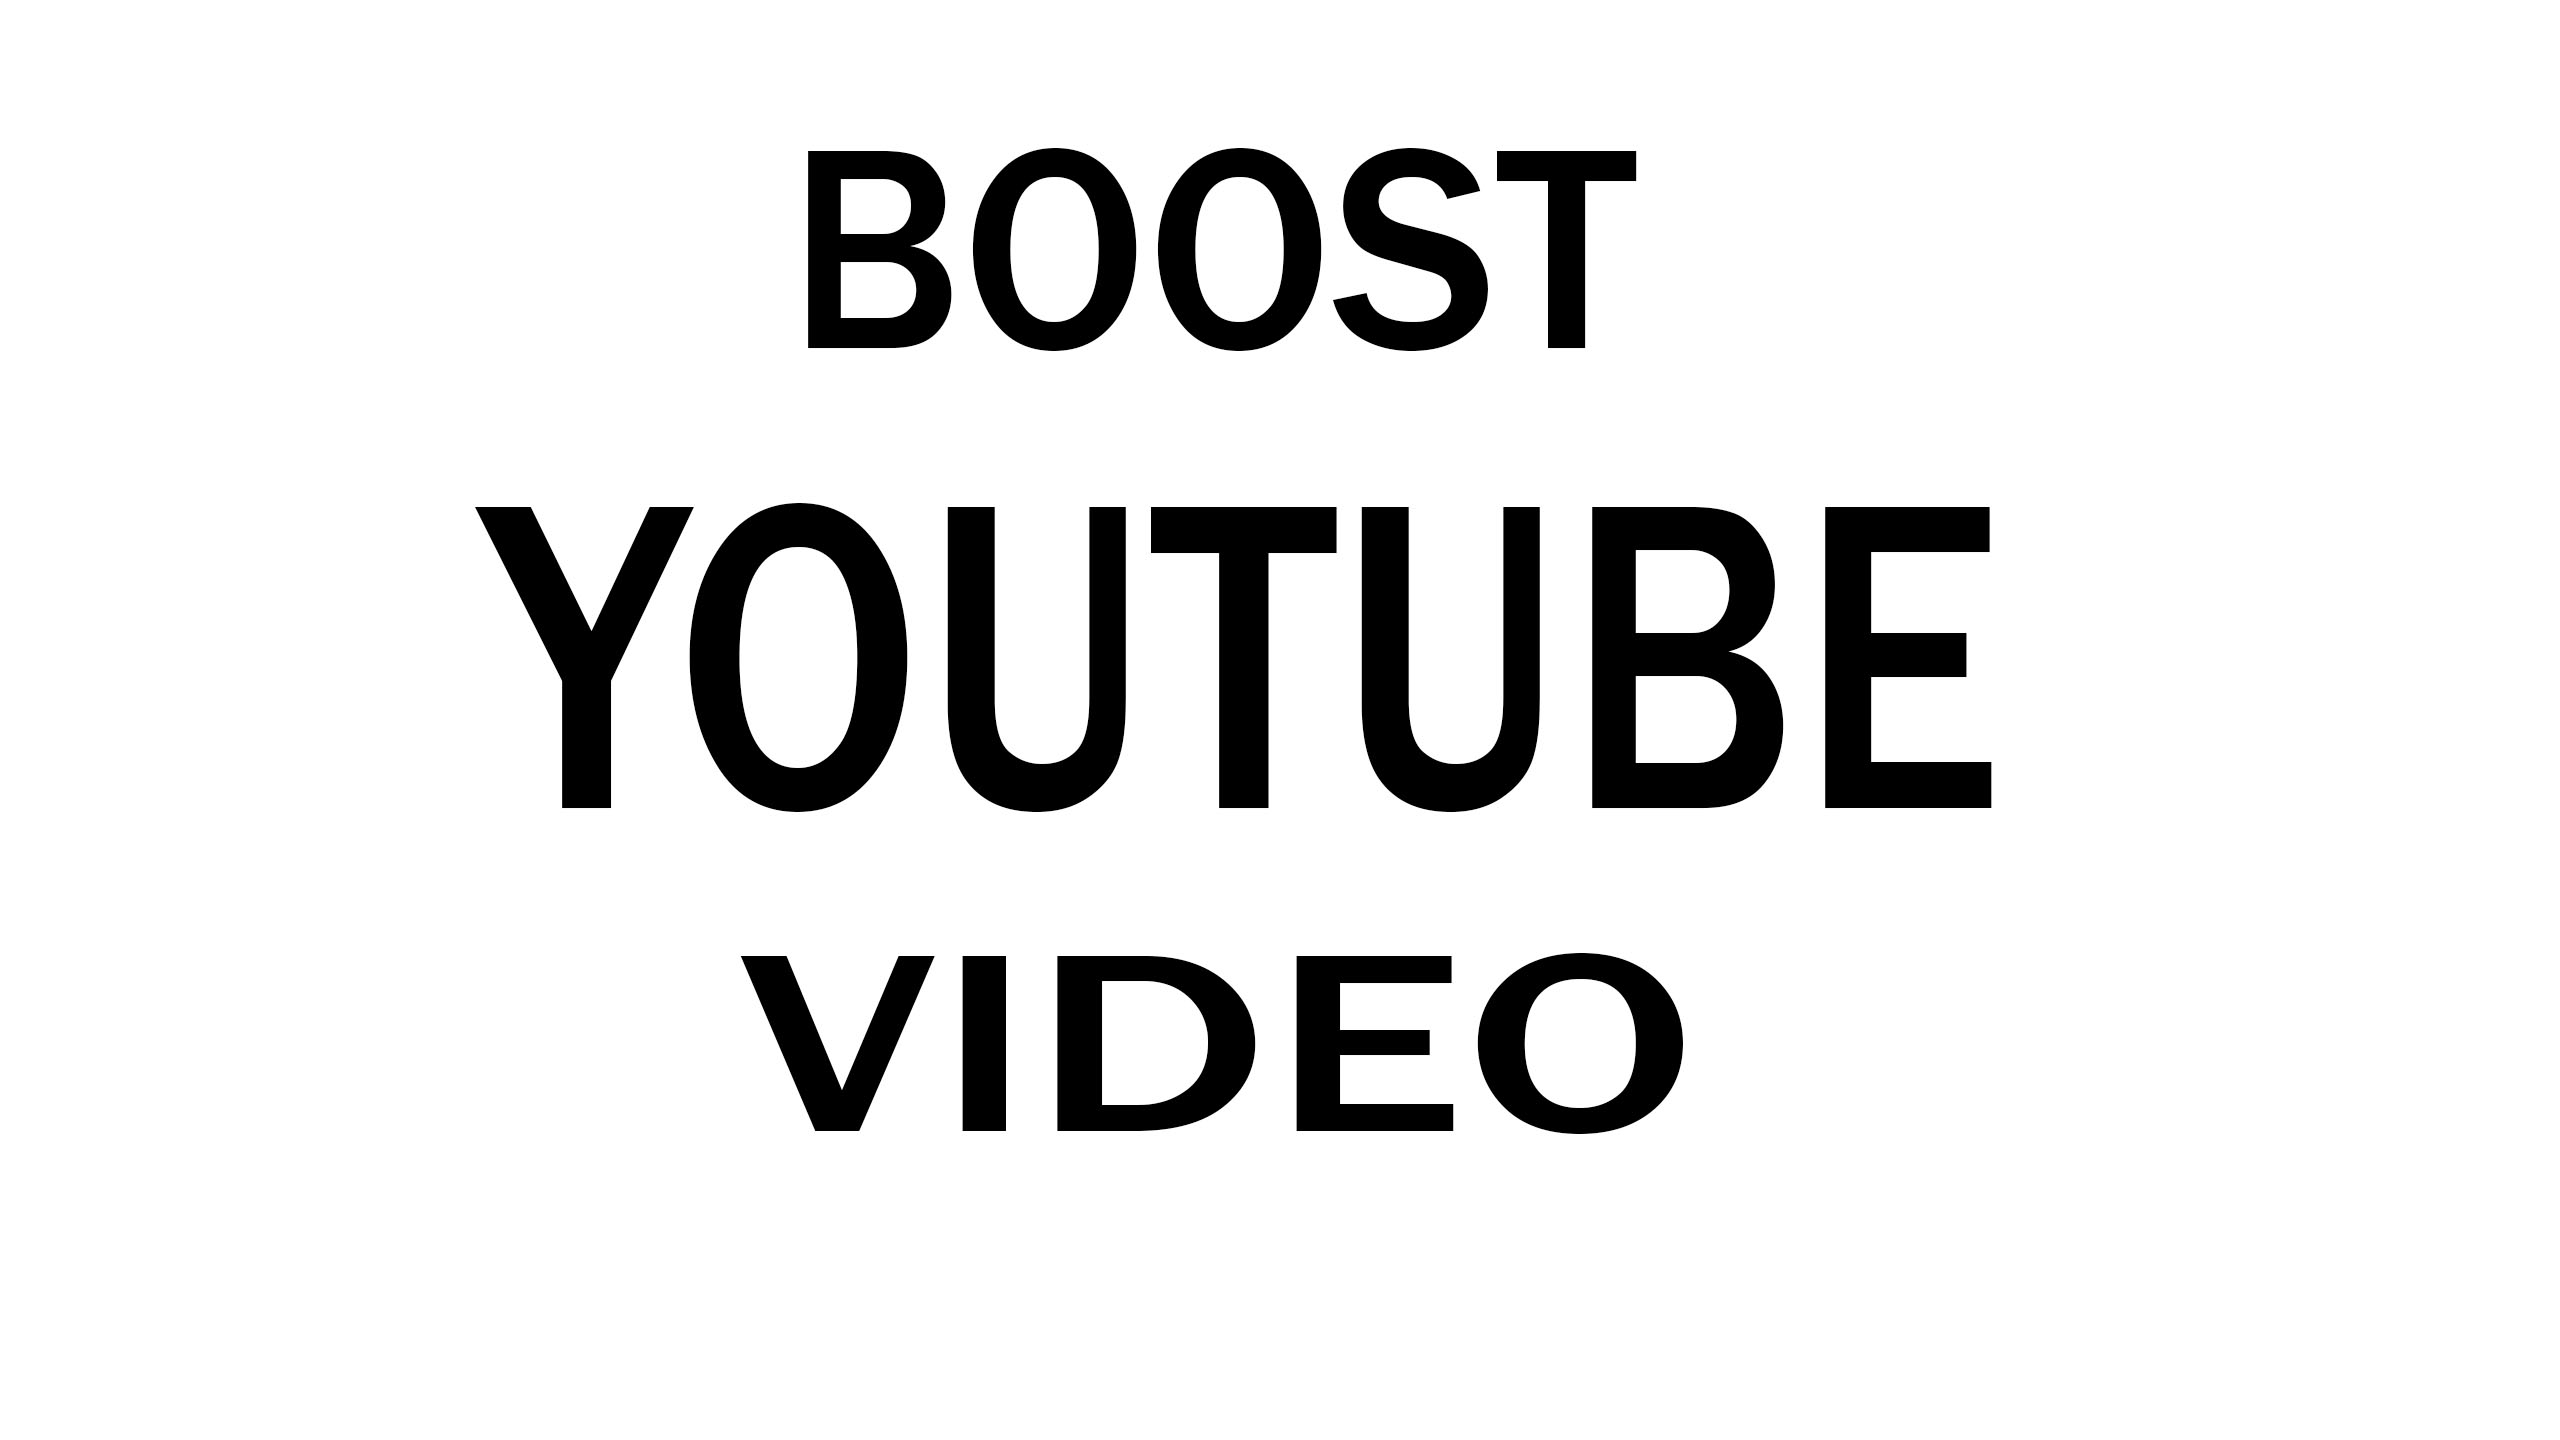 I will do promotion video and gain organic traffic